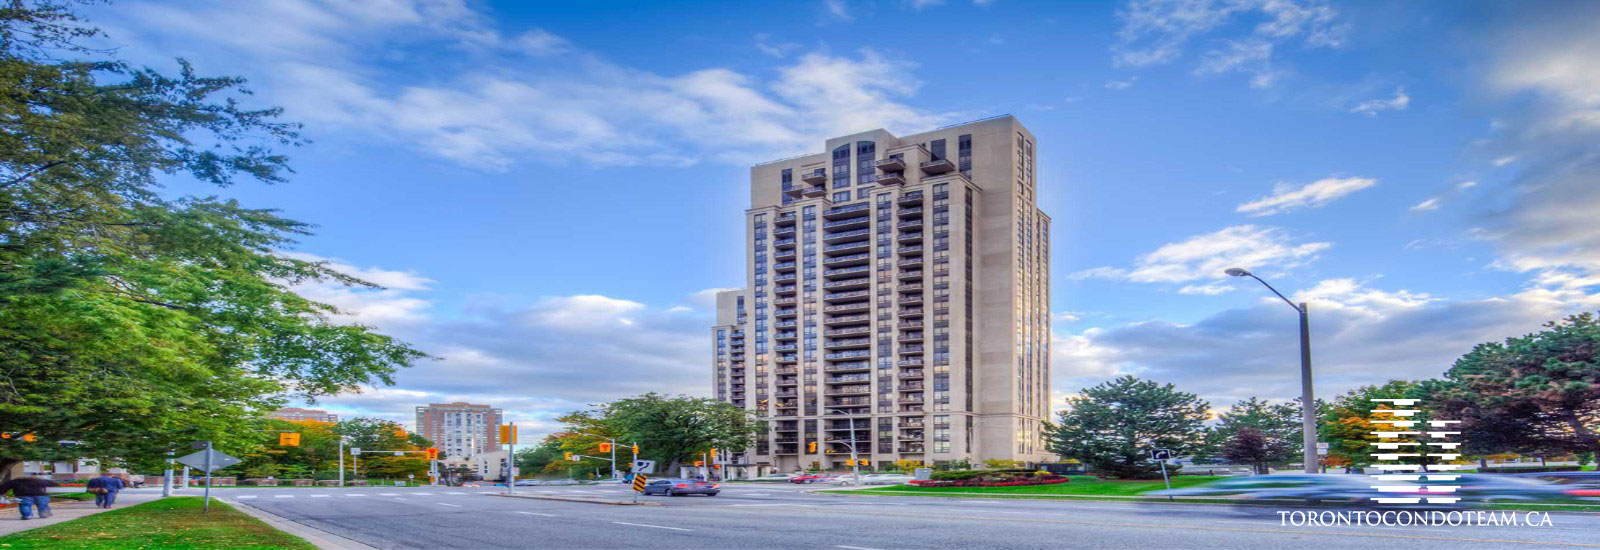 133-135 Wynford Drive Condos For Sale